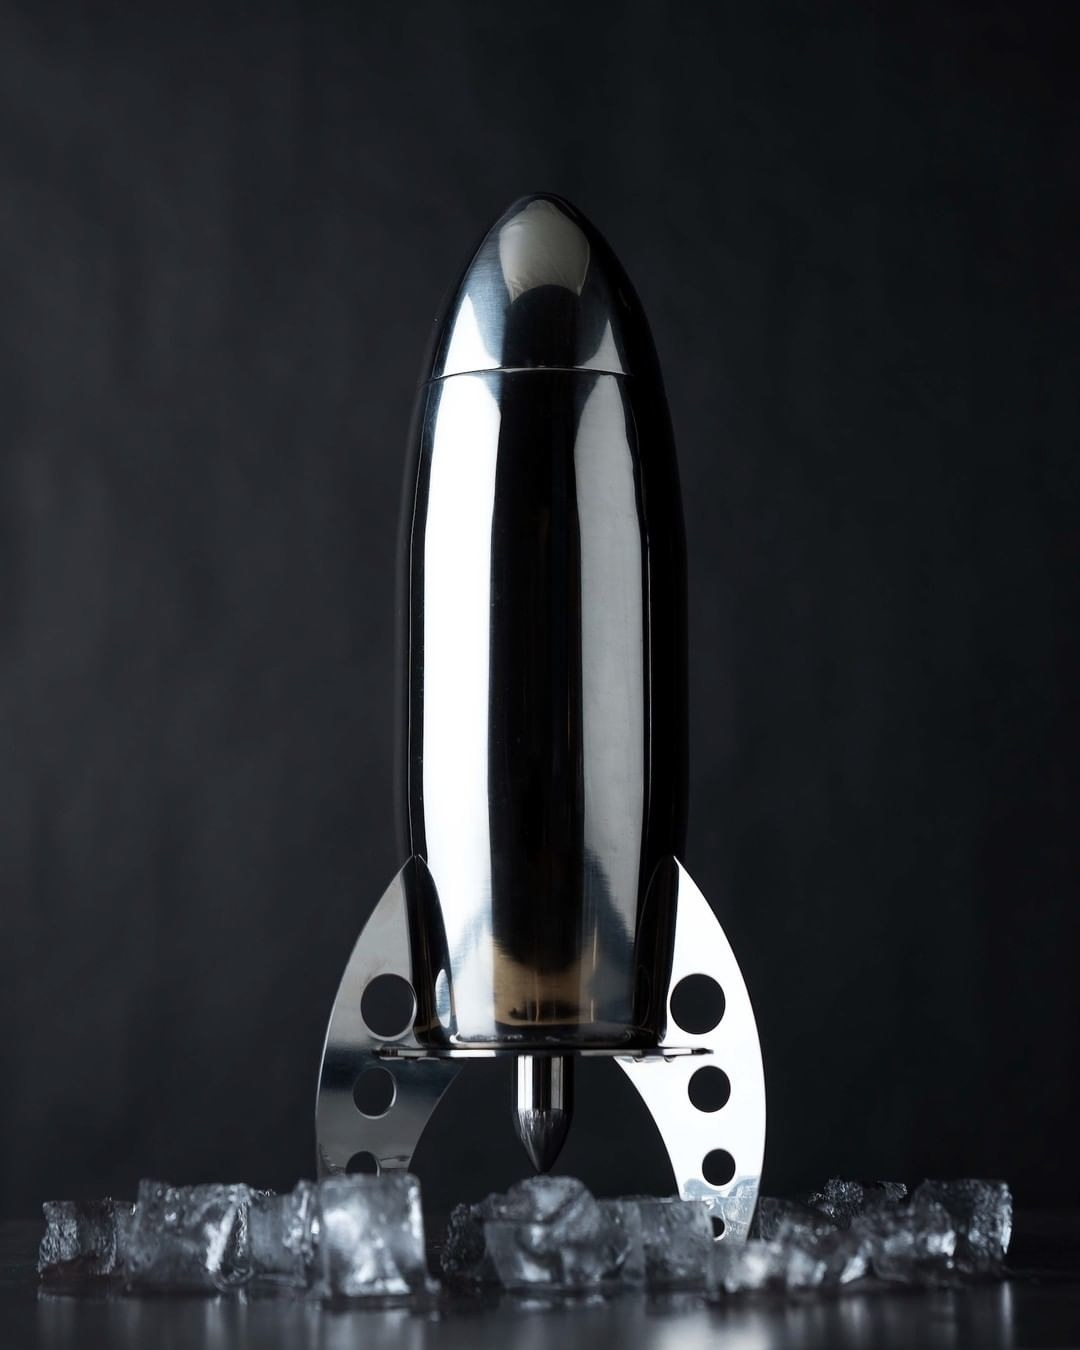 A close up of the rocket shaped shaker on a bed of ice